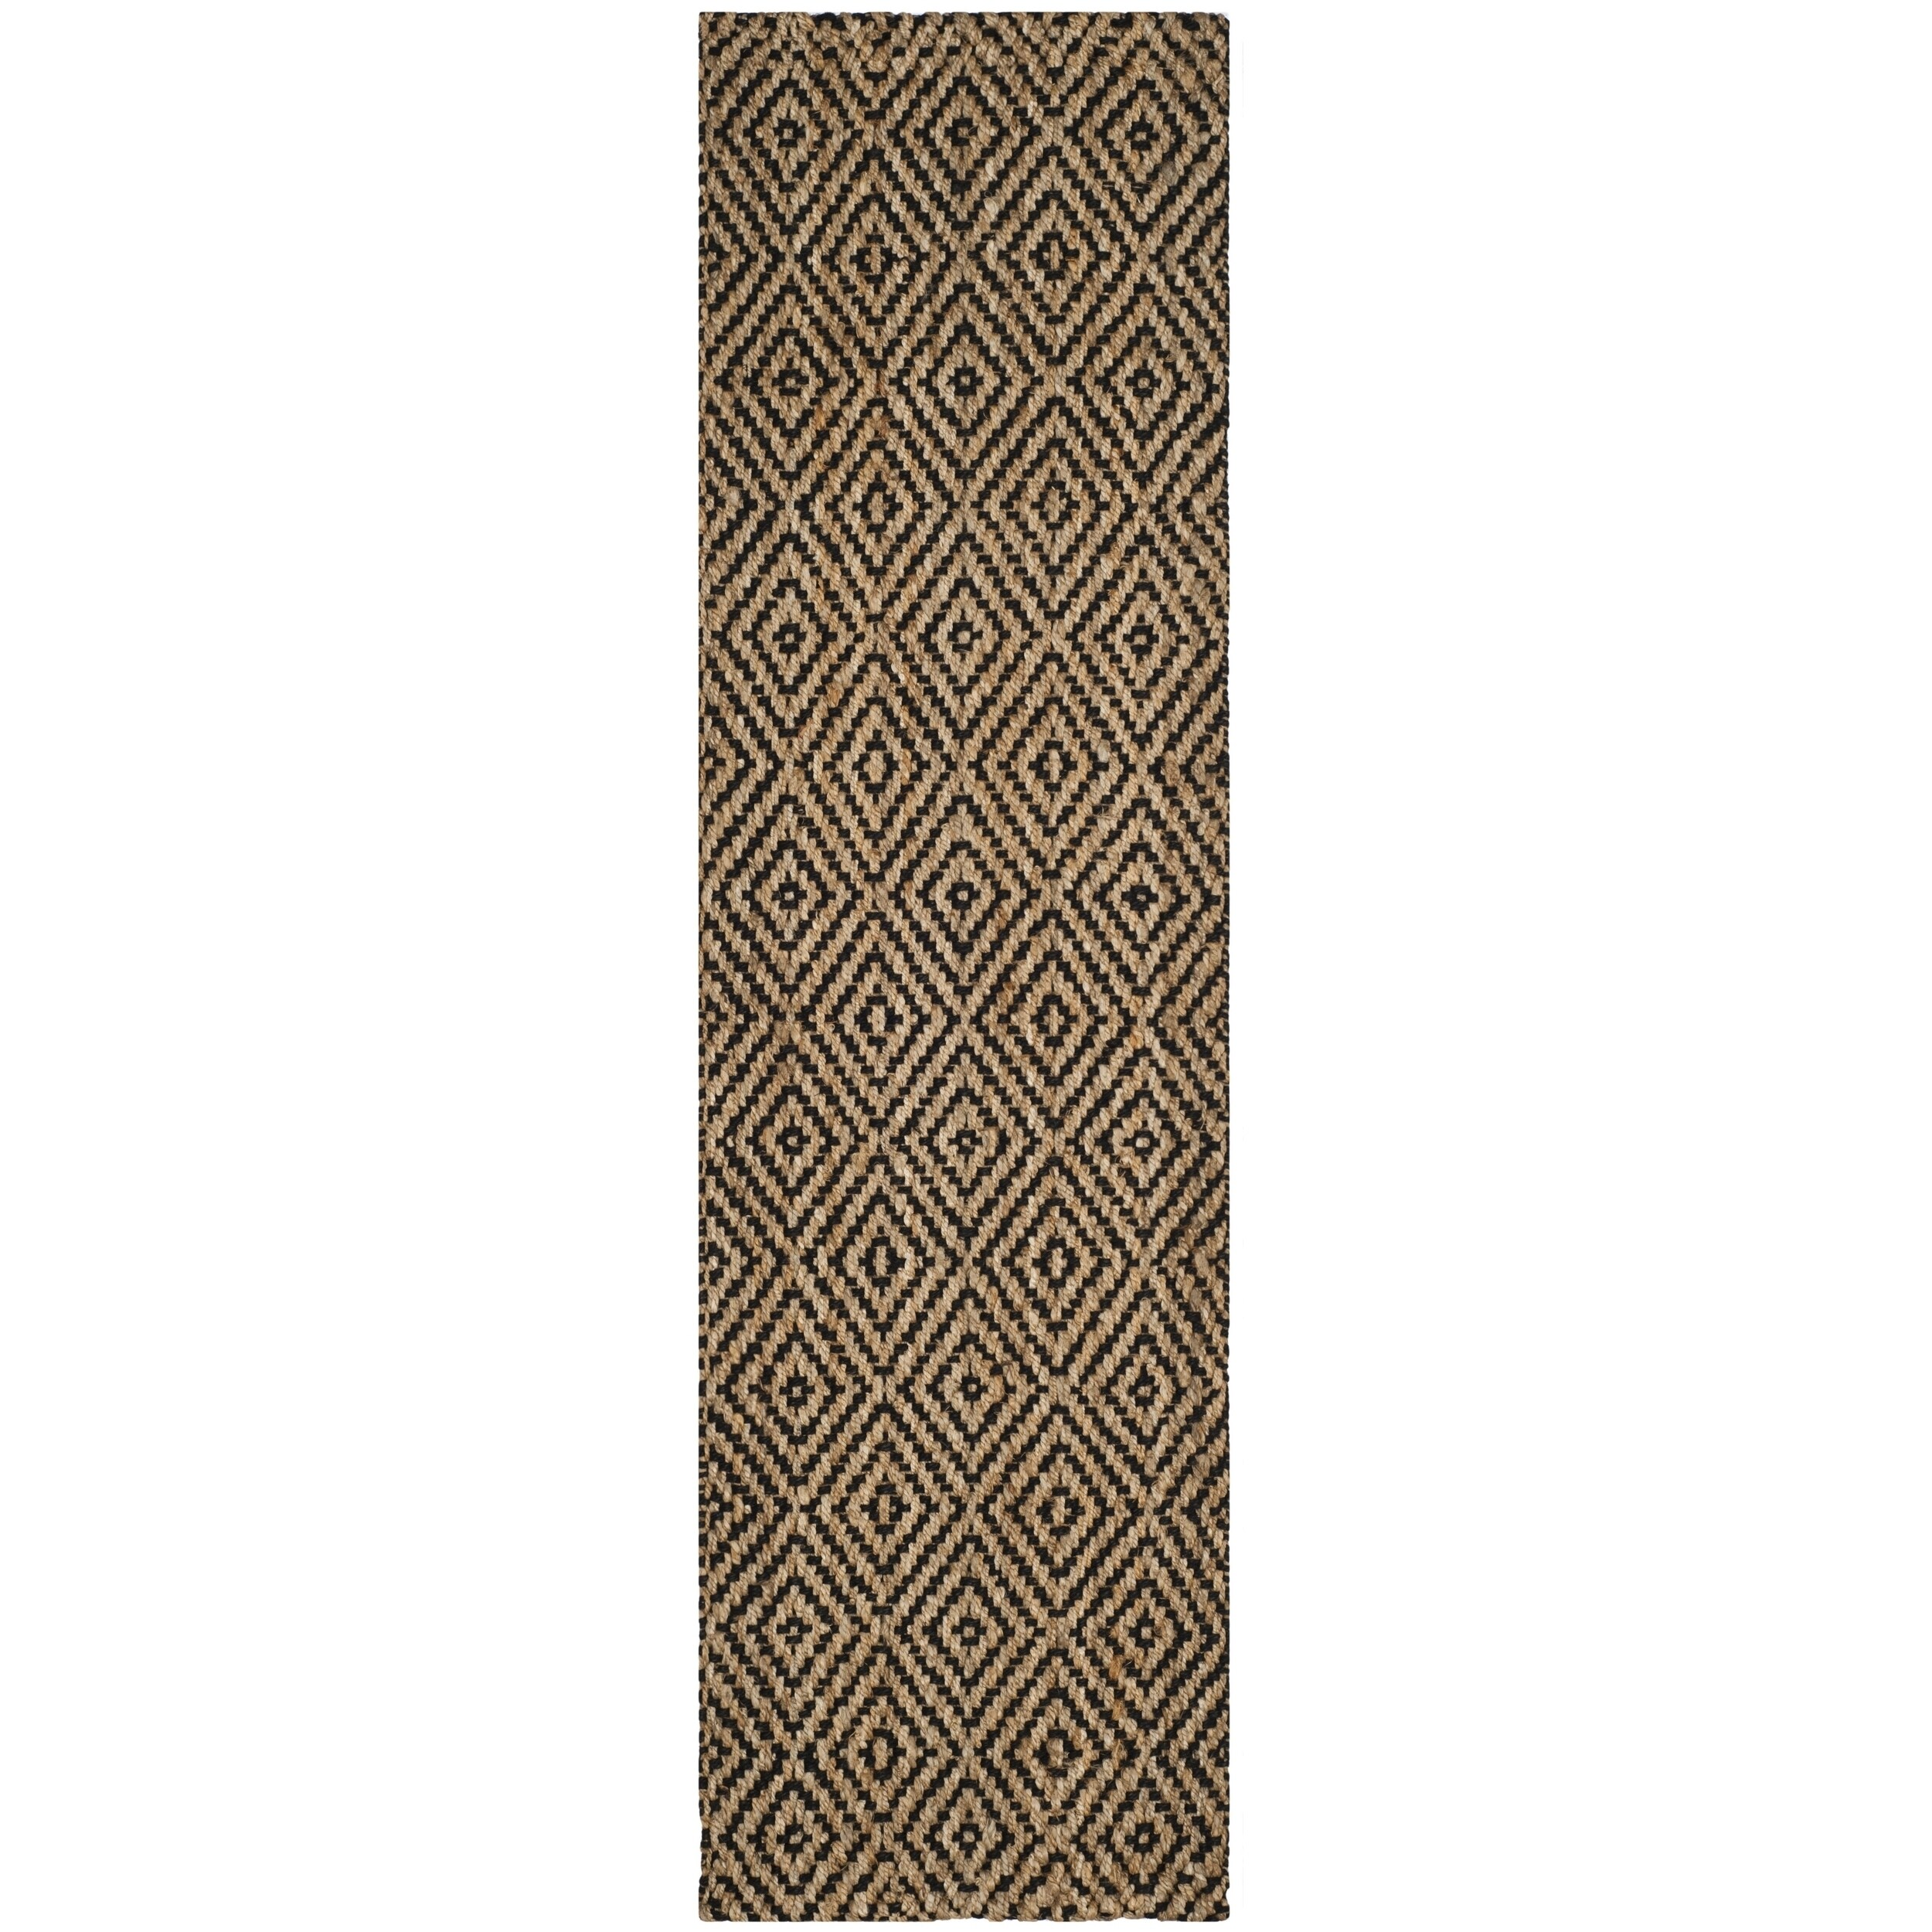 Safavieh Natural Fiber Coastal Solid Hand Woven Jute Black Runner Rug 2 3 X 14 On Free Shipping Today Com 16413036